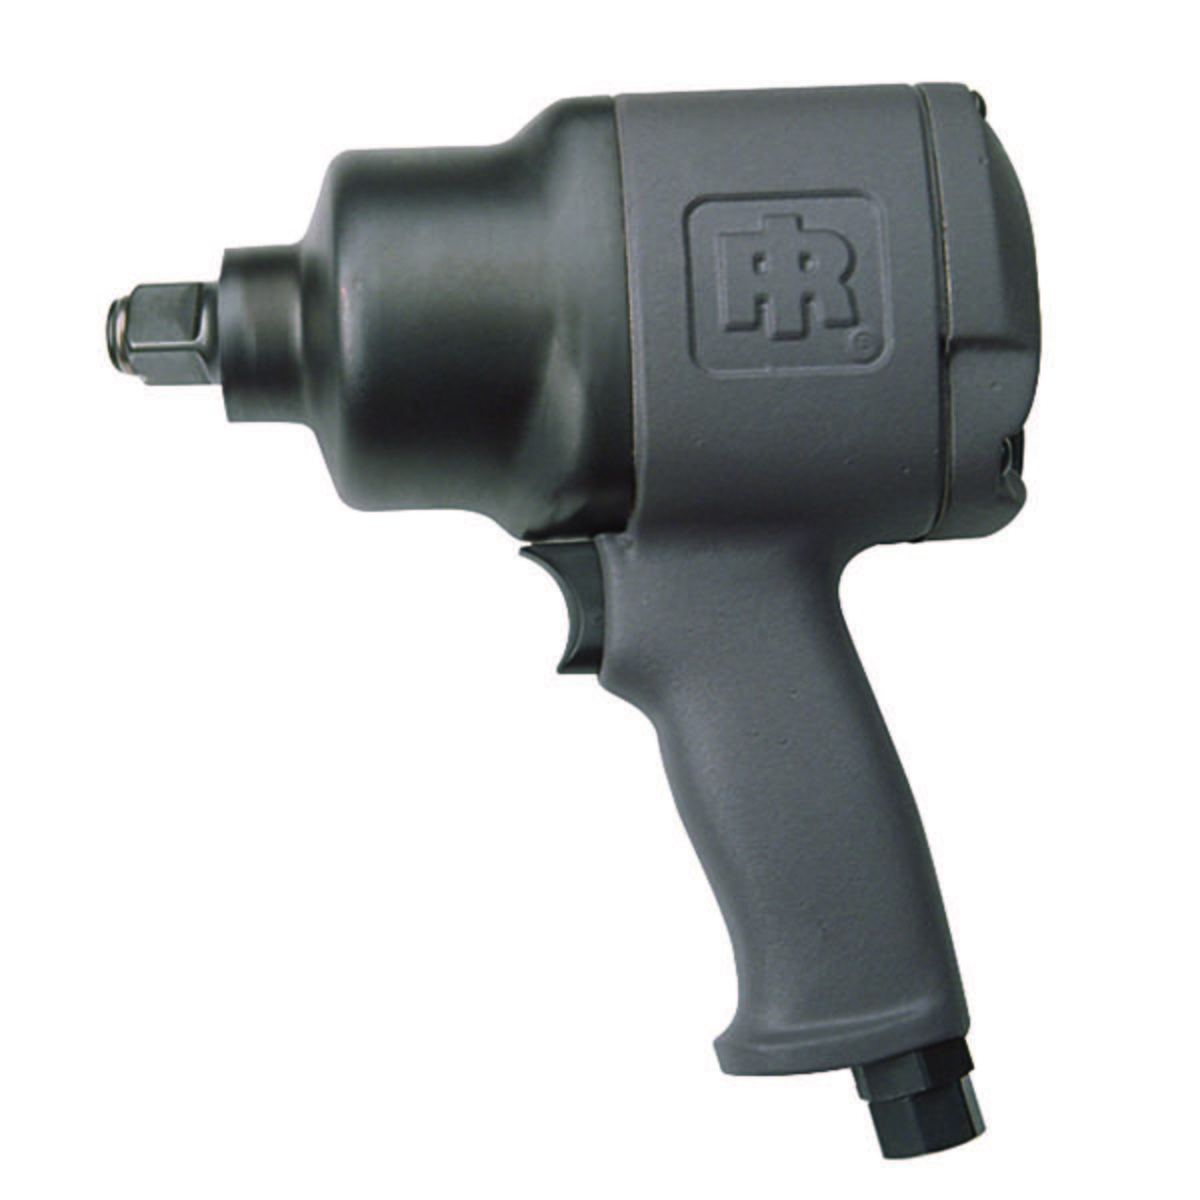 3/4-In Drive Super Duty Air Impact Wrench - 1,250 Ft-Lbs Max Torque